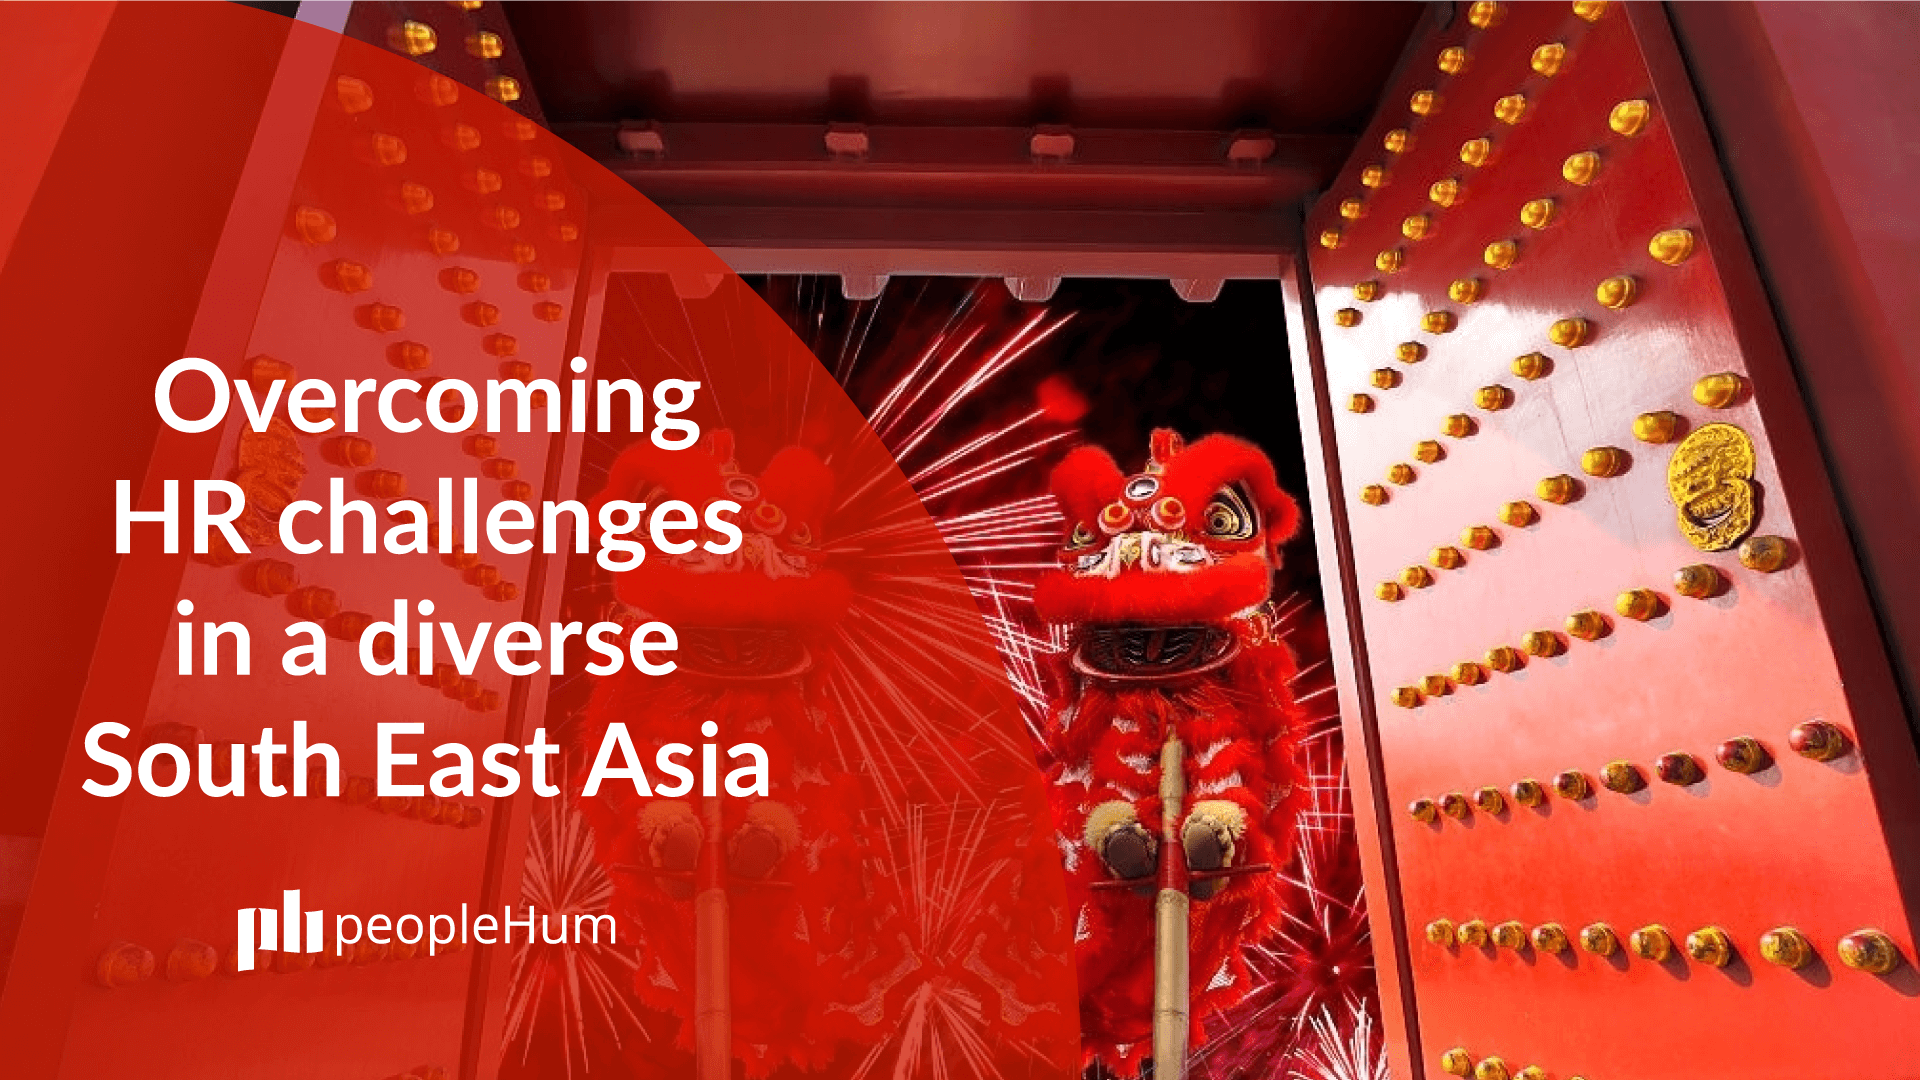 Overcoming HR challenges in a diverse South East Asia